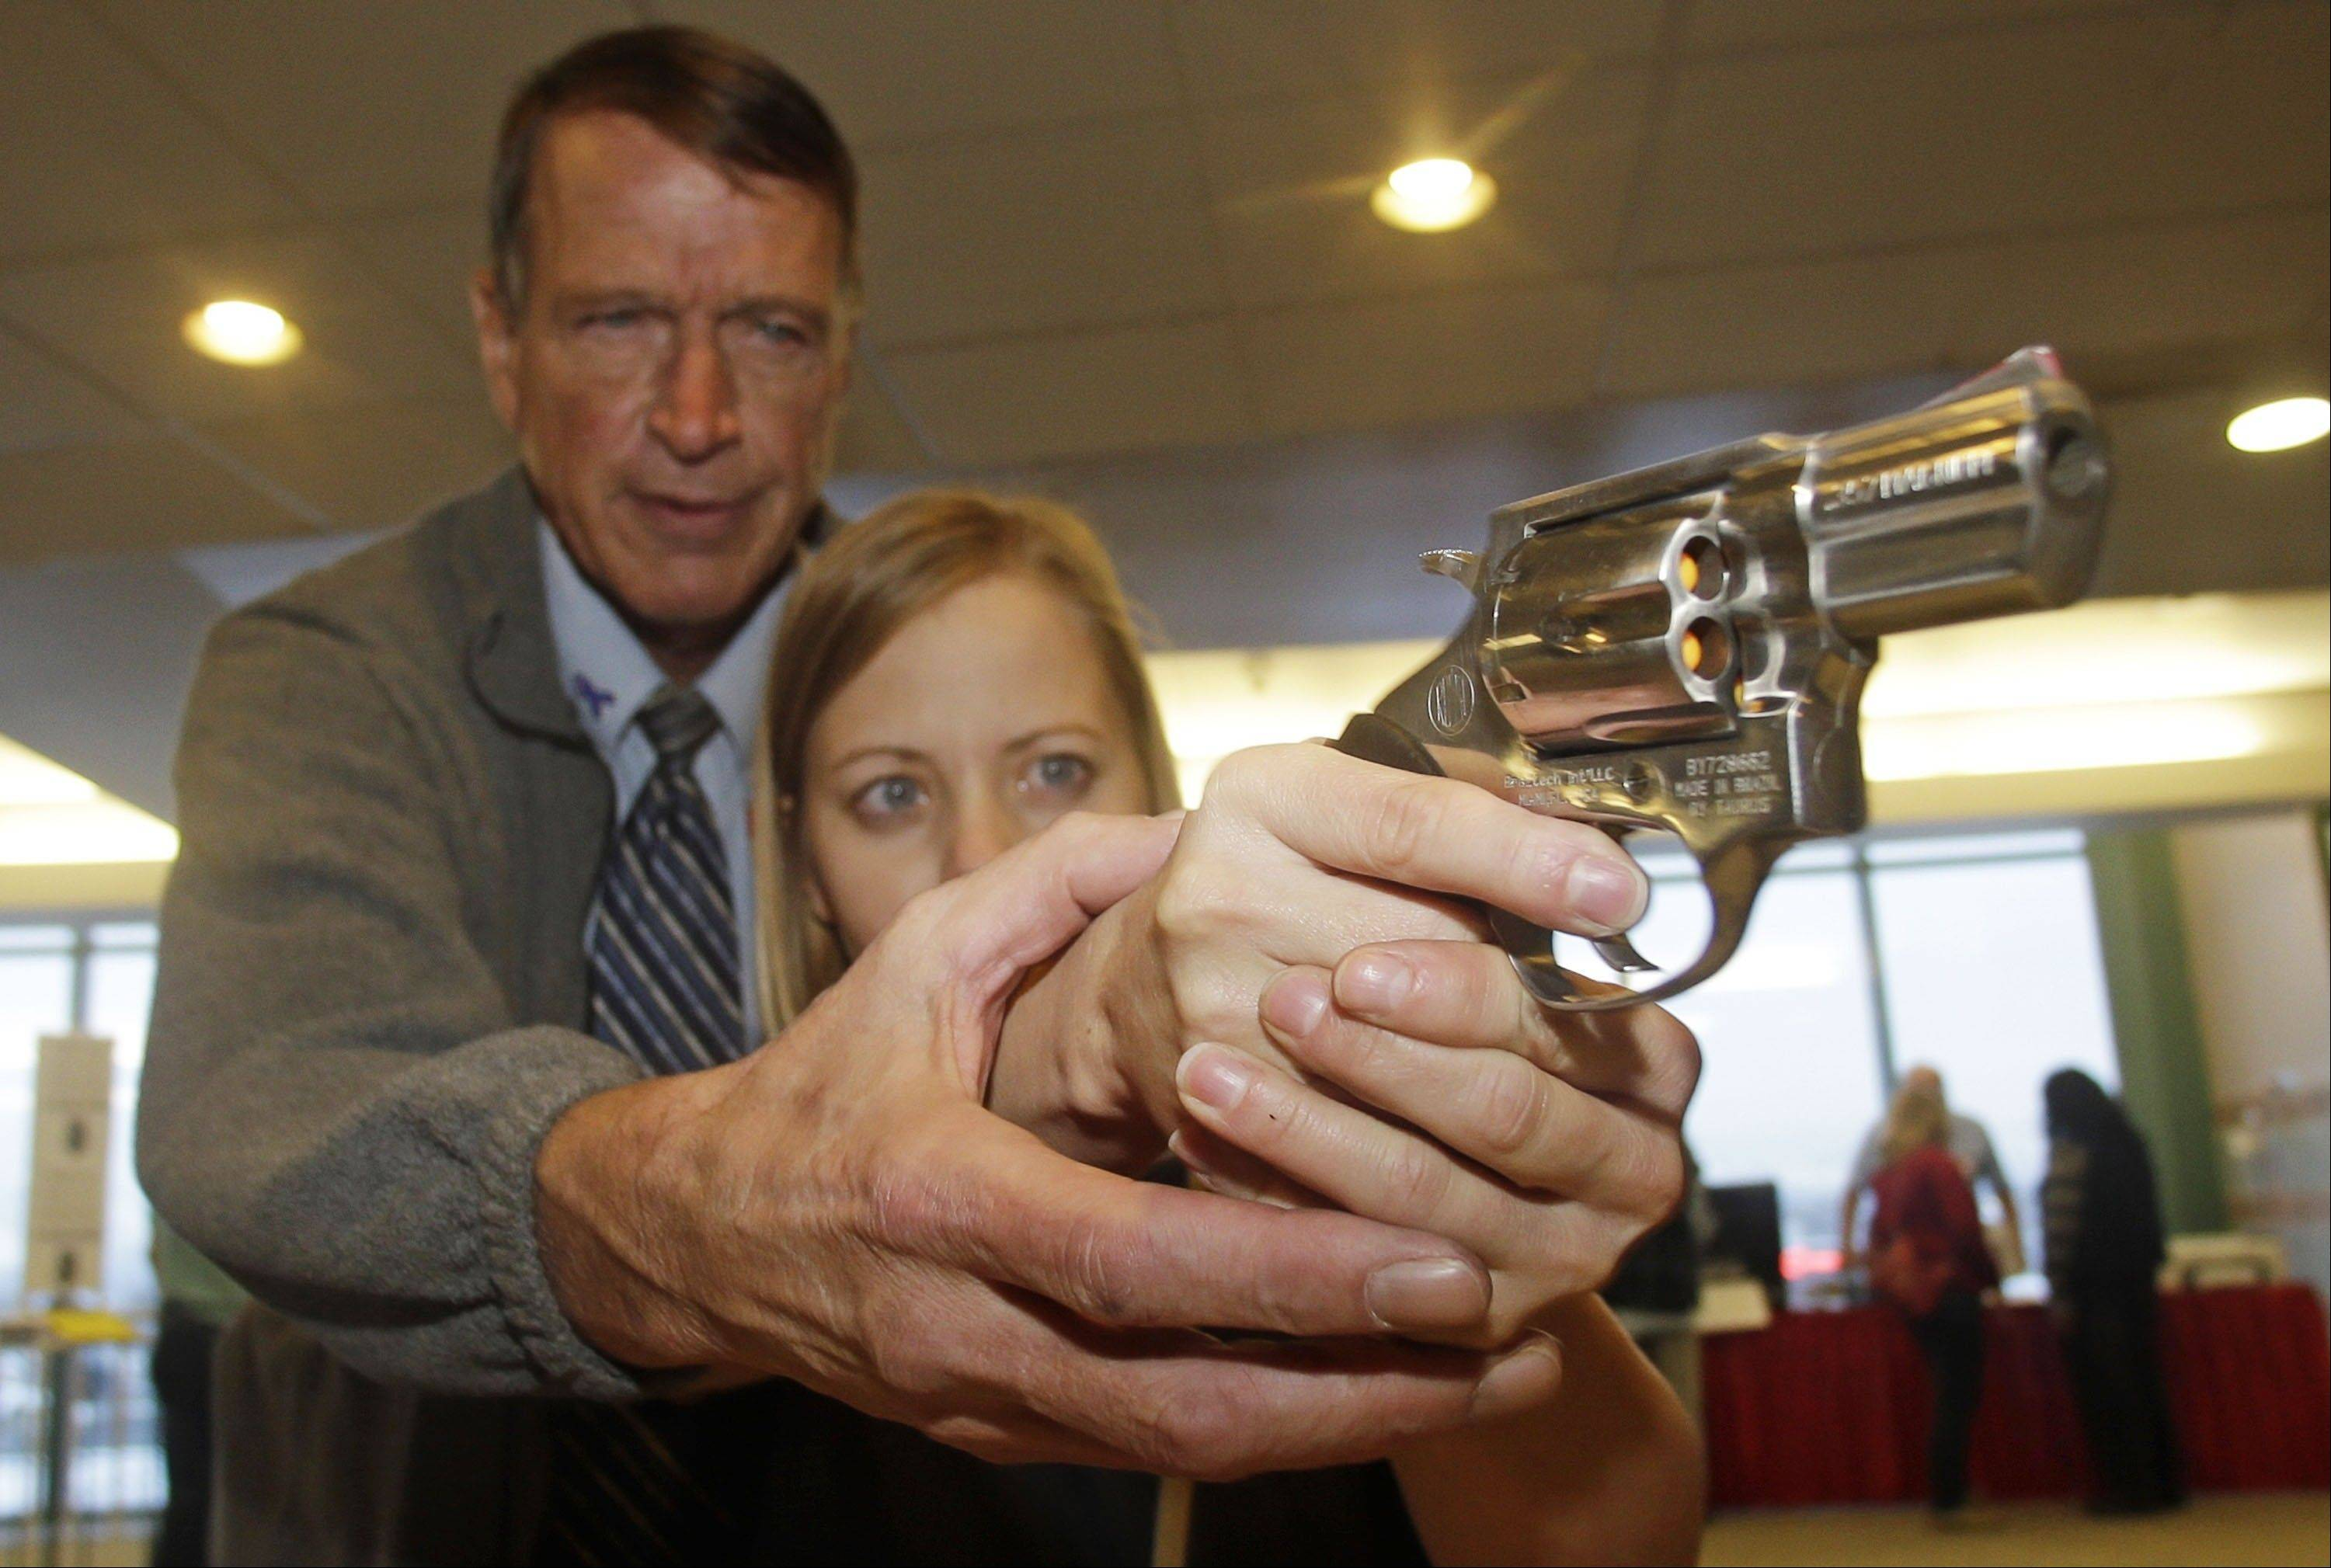 Cori Sorensen, a fourth grade teacher from Highland Elementary School in Highland, Utah, receives firearms training with a .357 magnum from personal defense instructor Jim McCarthy in West Valley City, Utah, where teachers and administrators are allowed to bring guns to school.